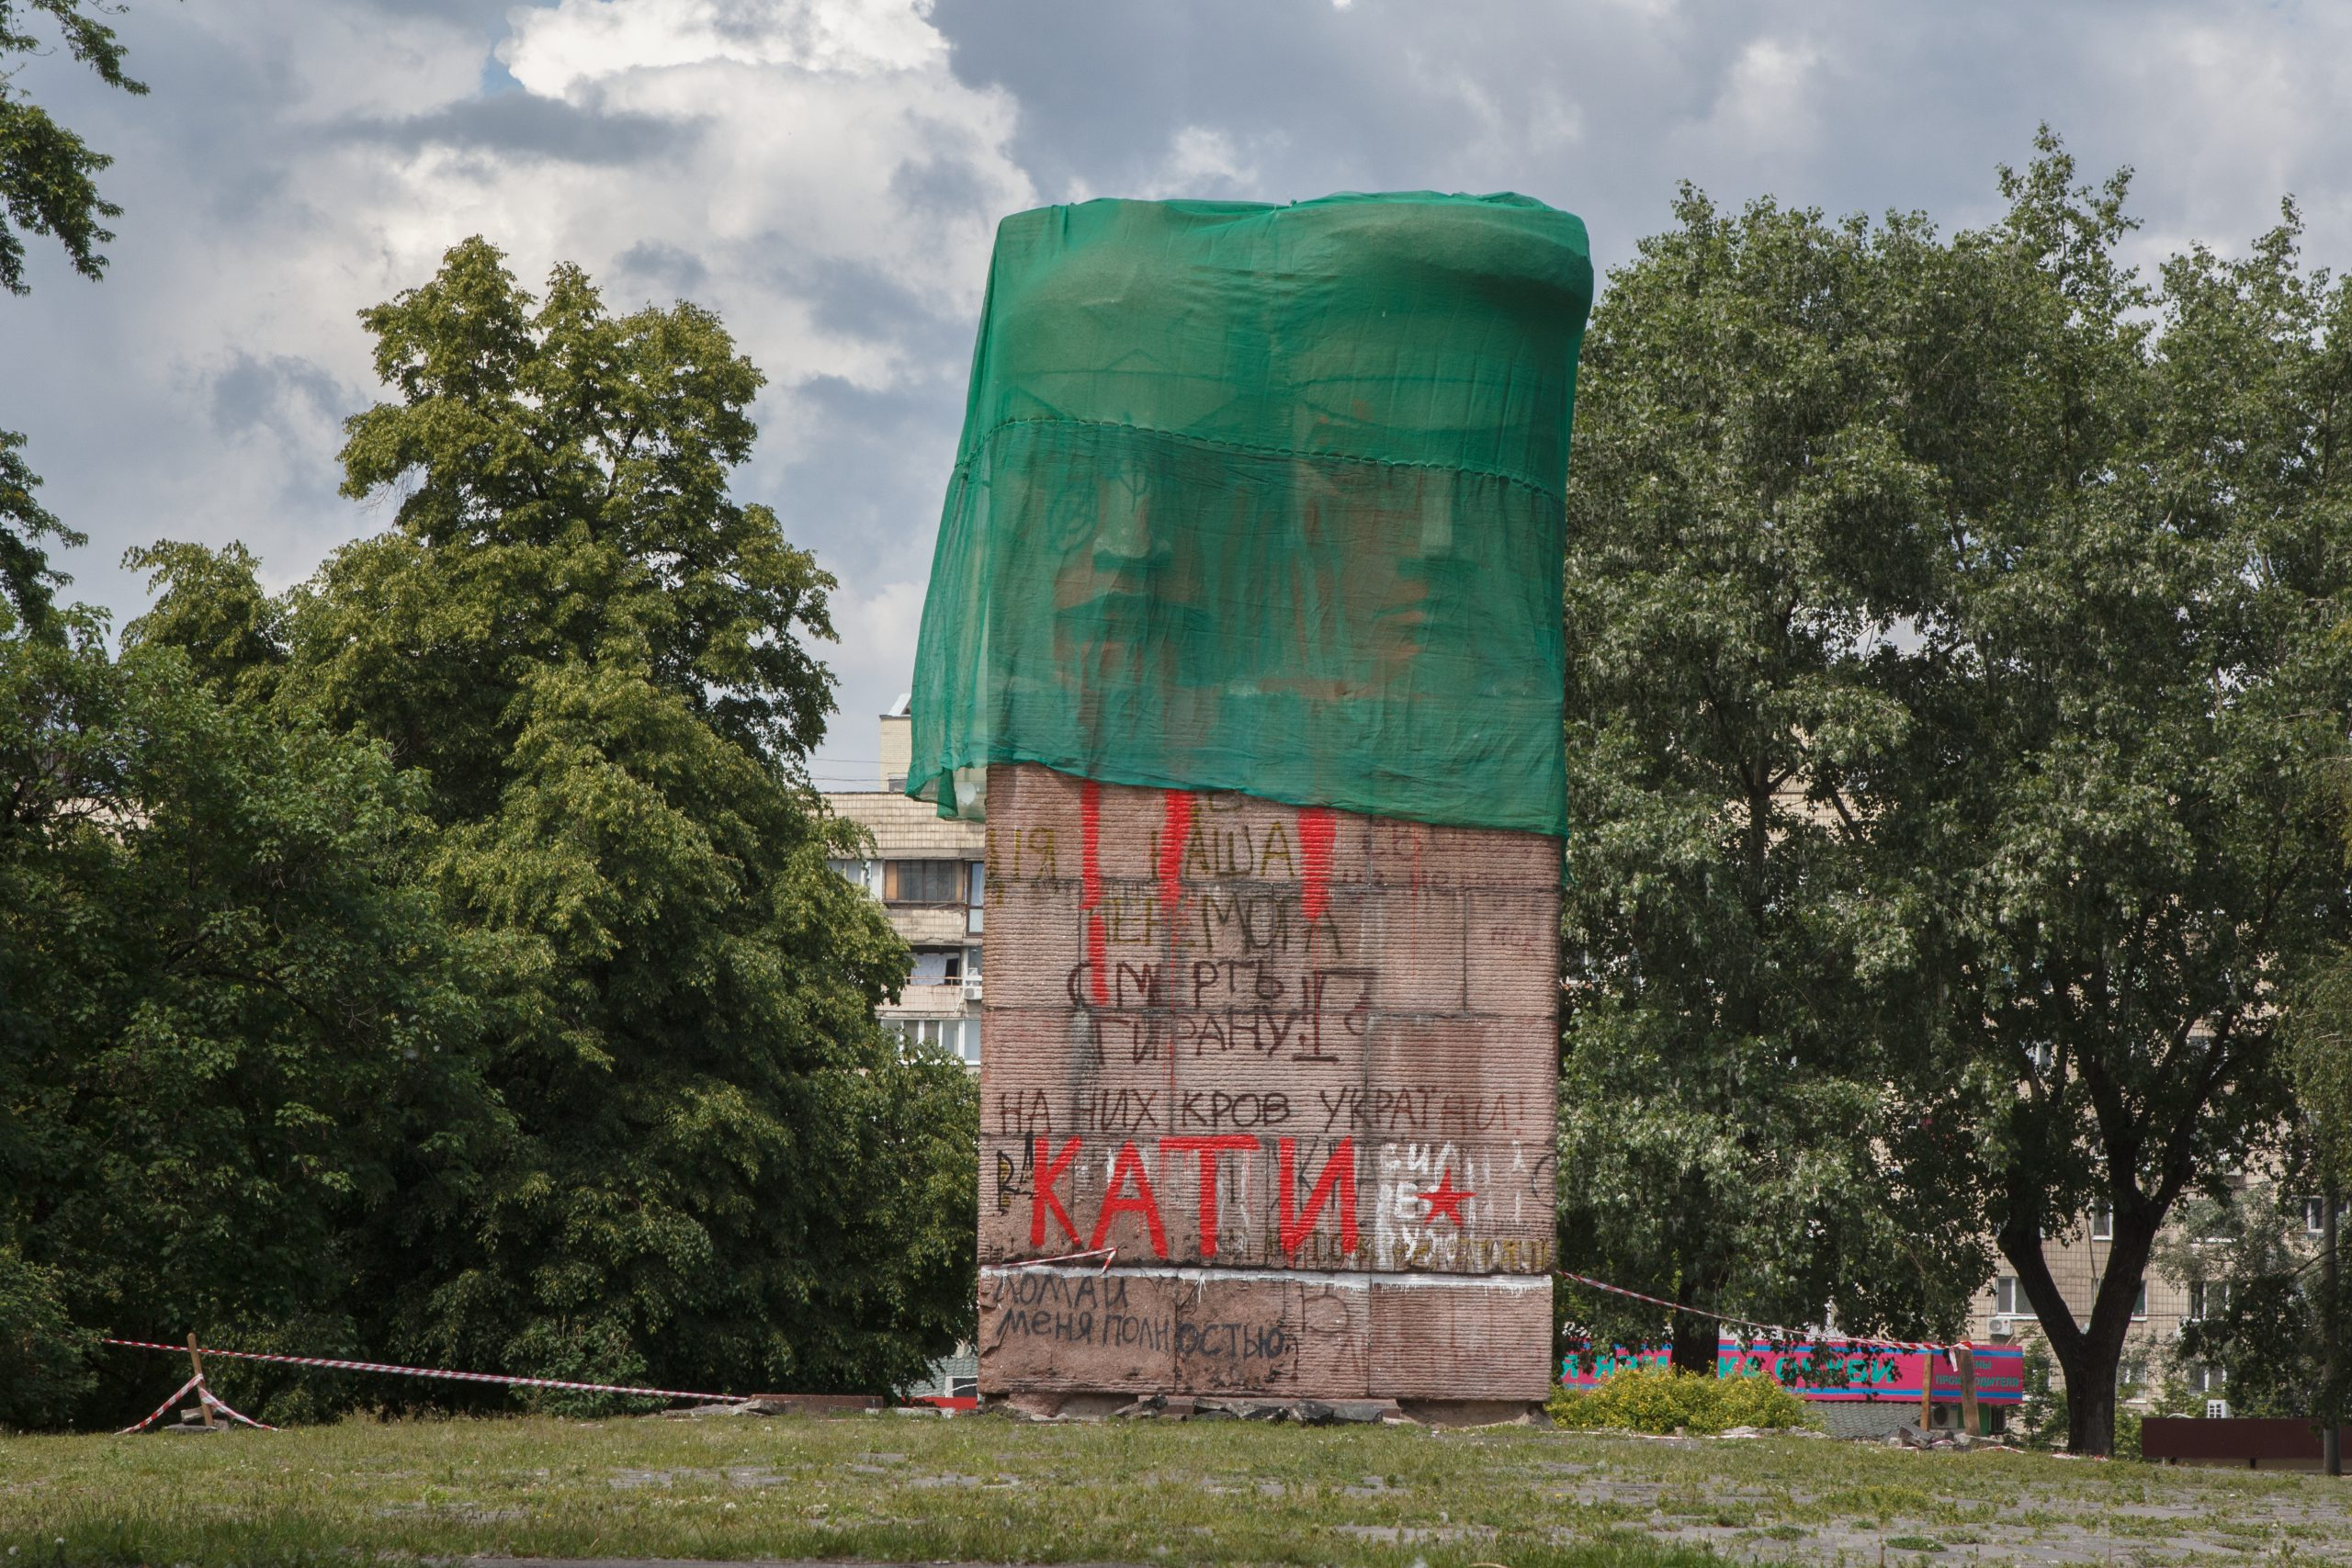 large Soviet World War 2 Red Army monument with graffitti covered by a green cloth in an urban park